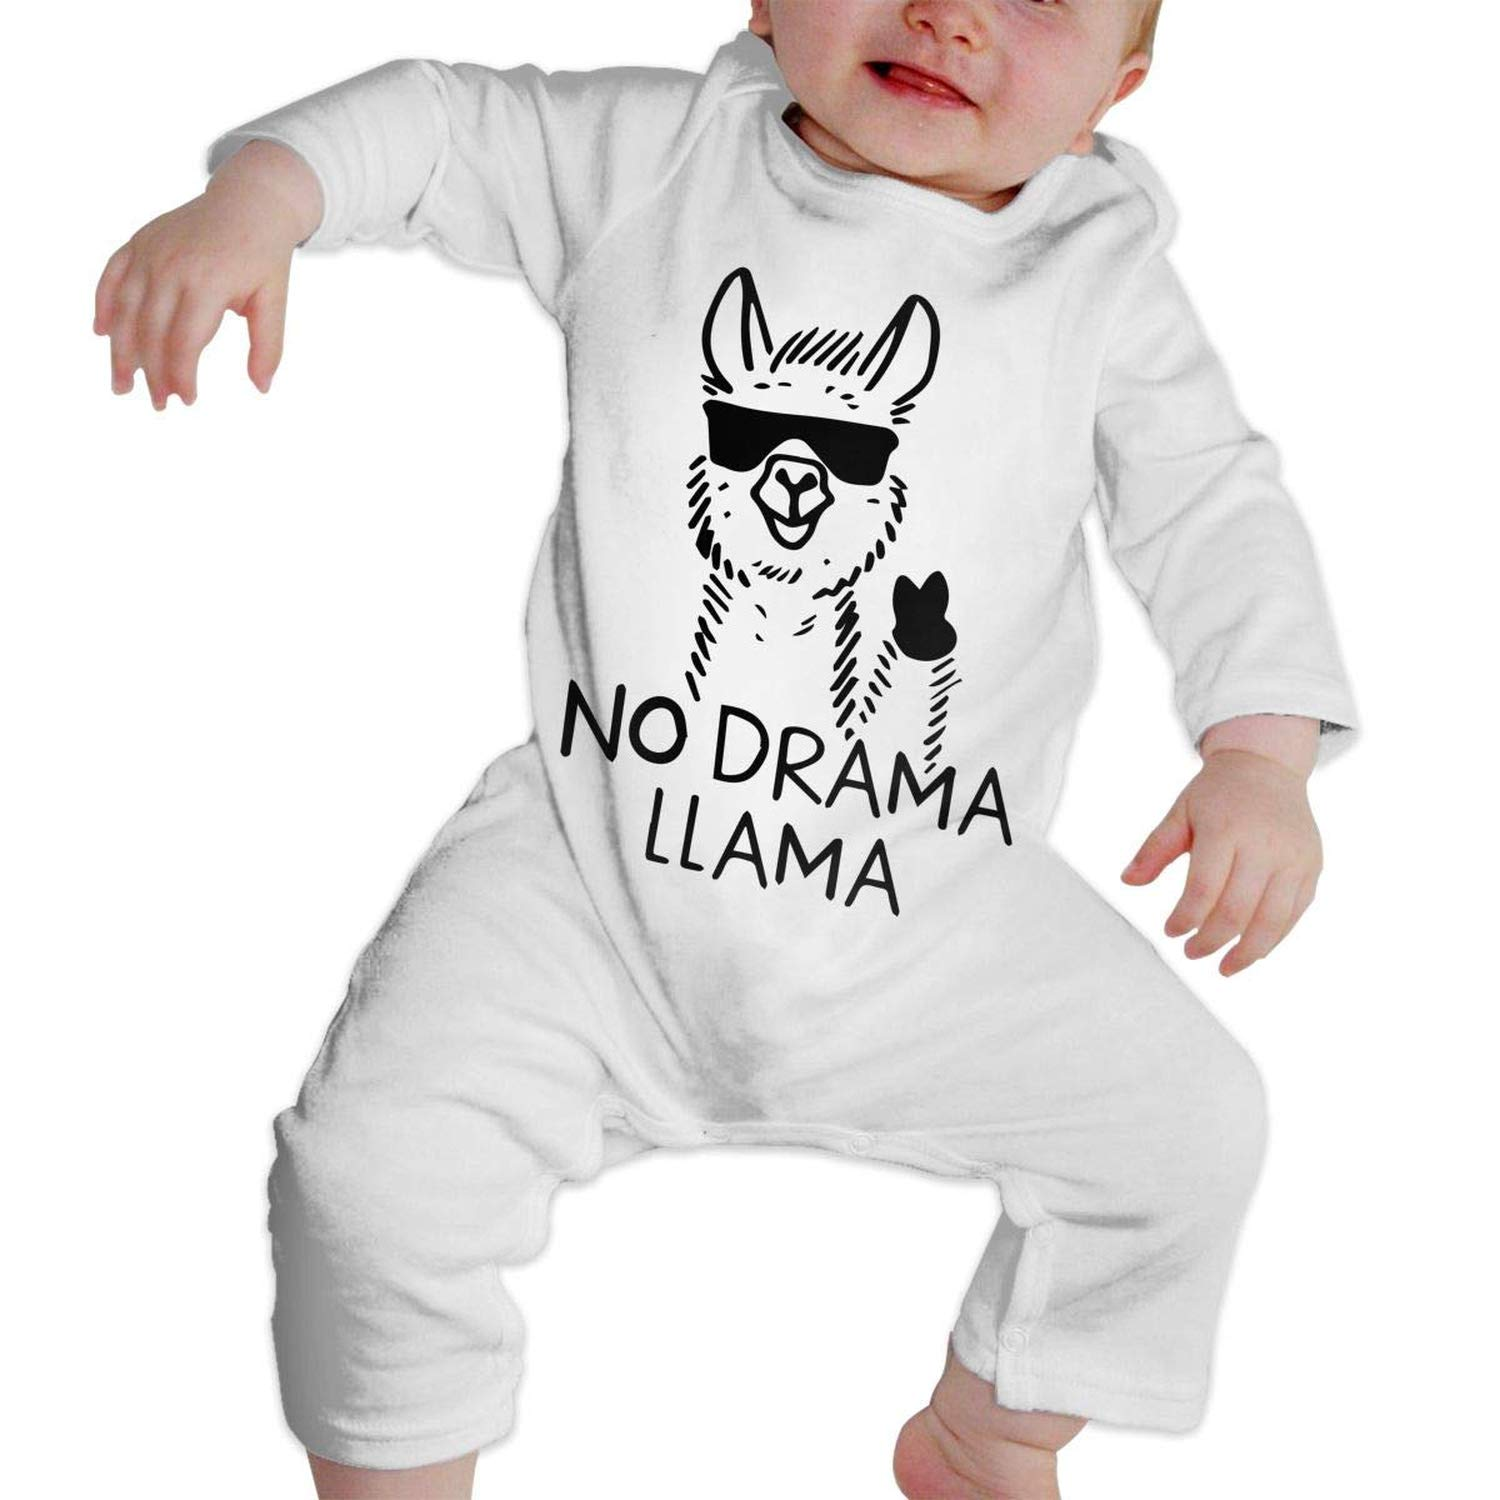 No Drama No Llama Newborn Kids Long Sleeve Bodysuit Infant Romper Jumpsuit Onesies